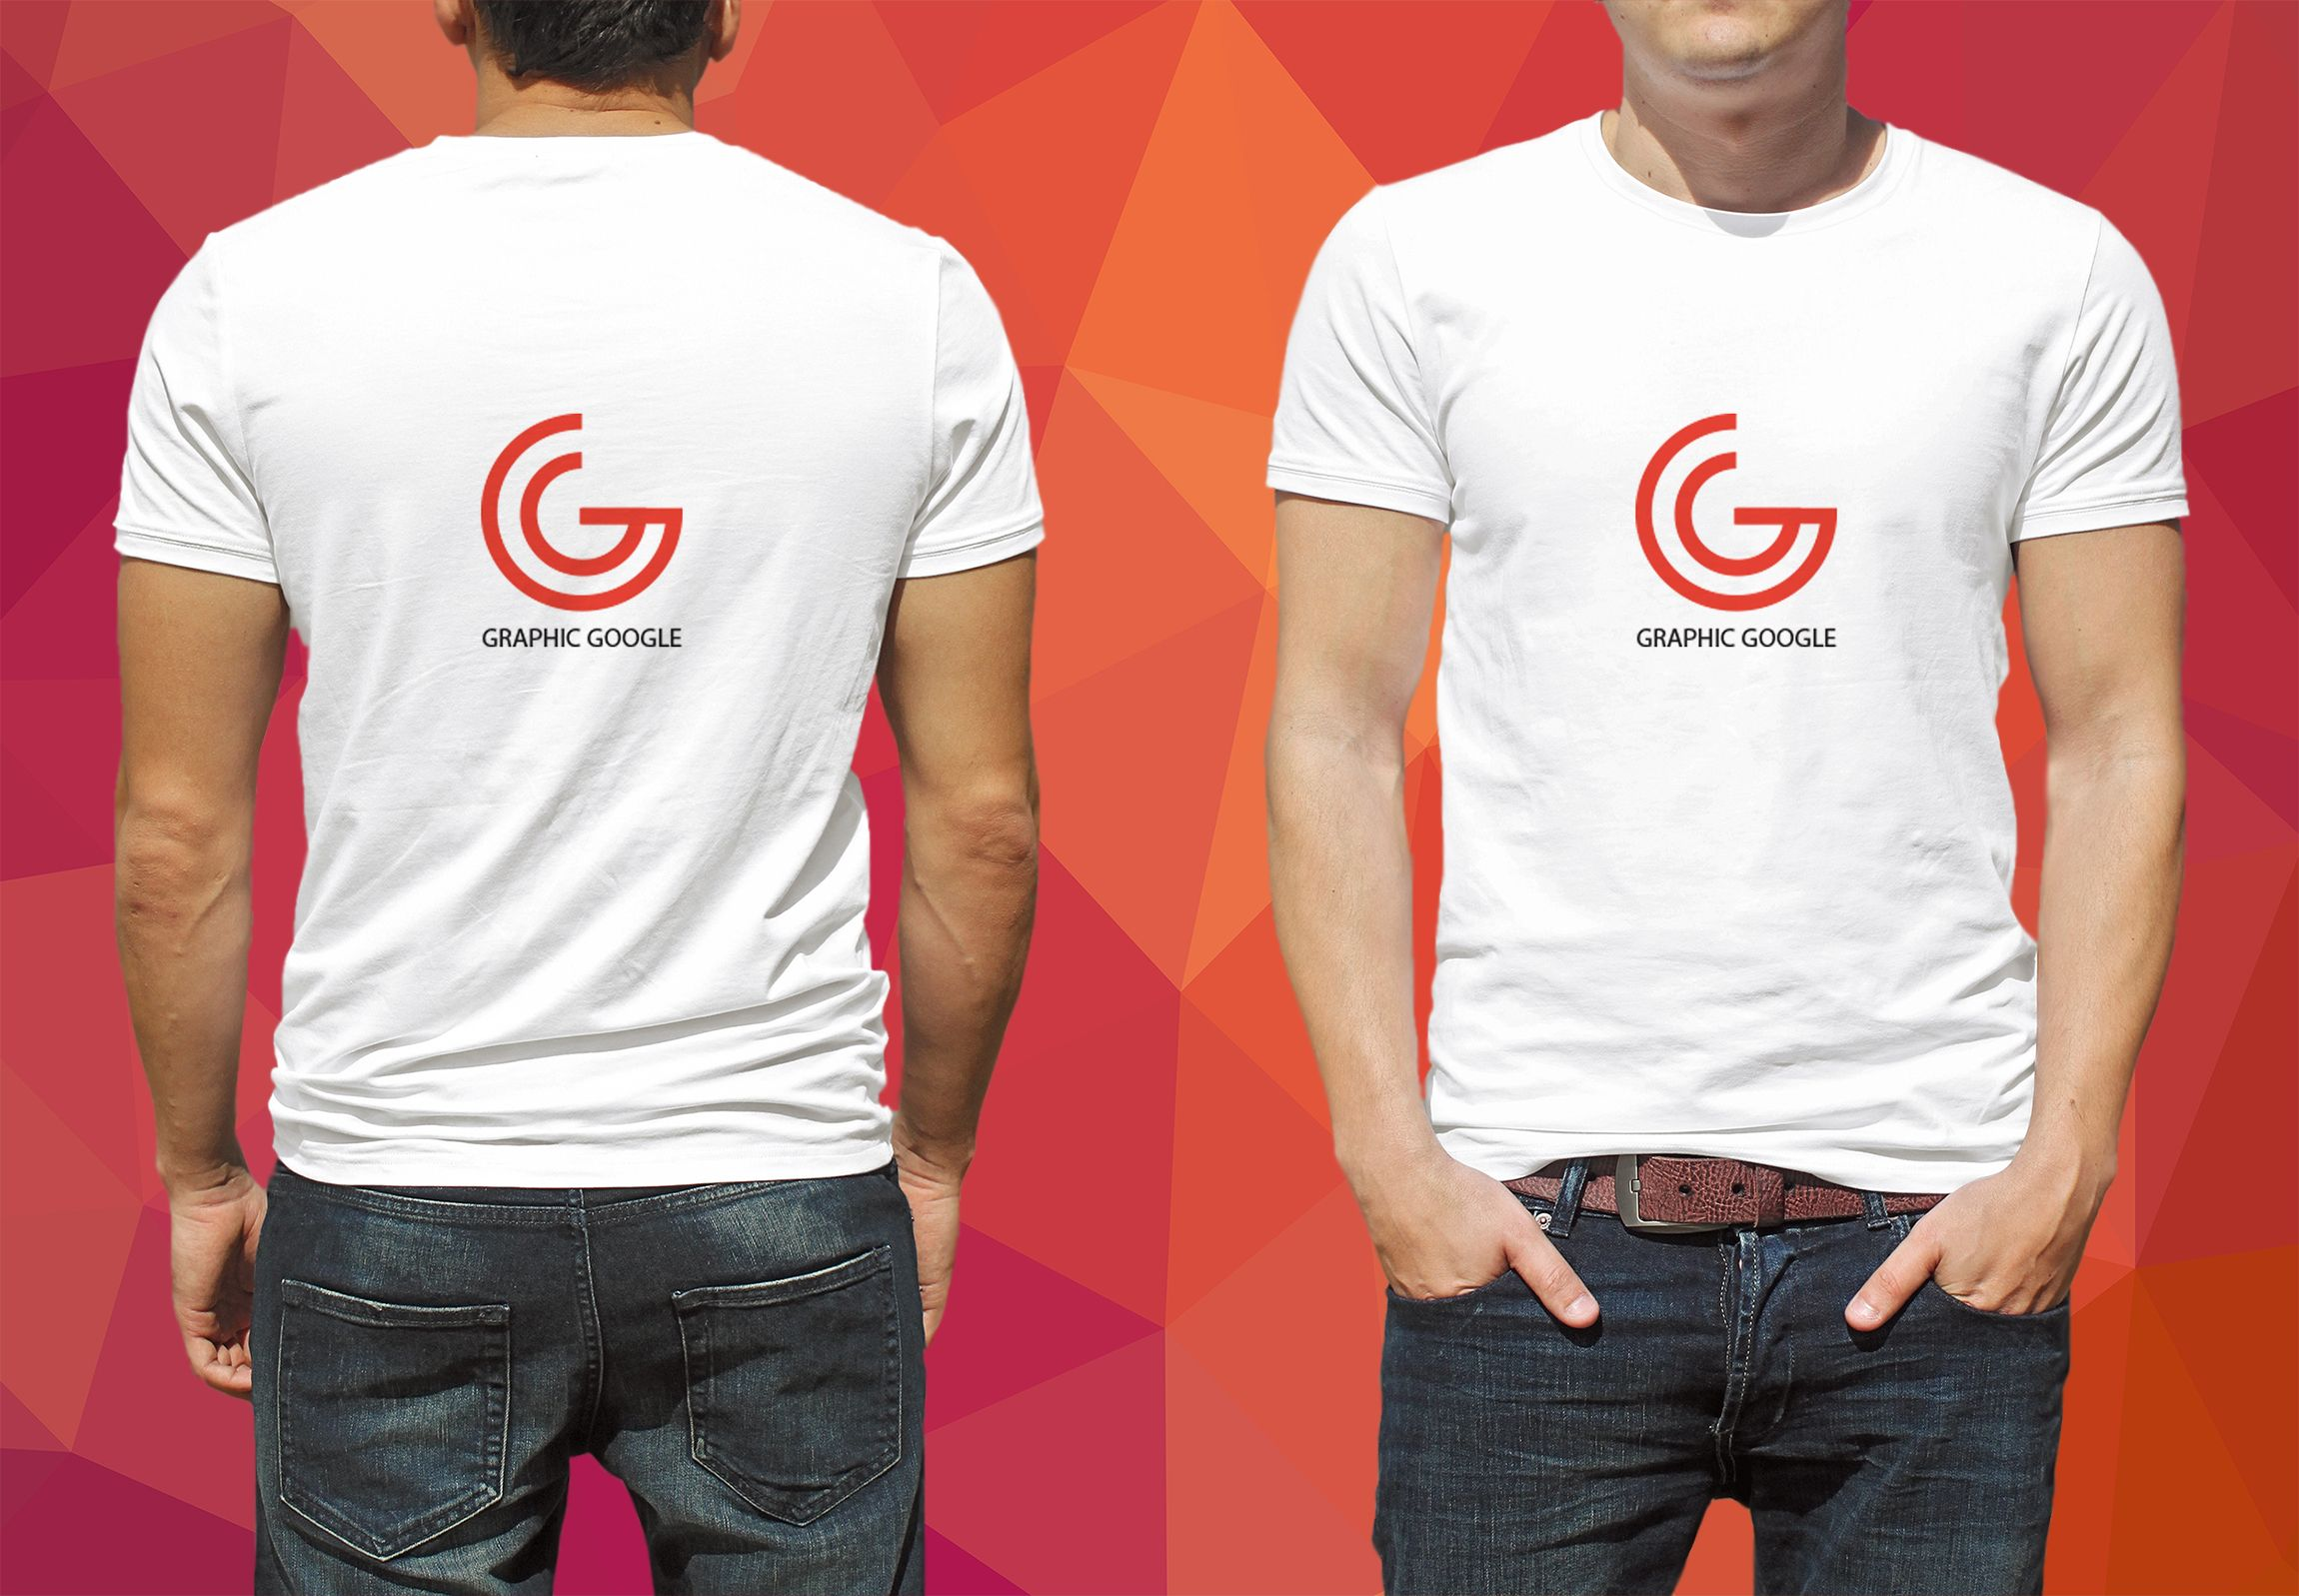 Download Free T Shirt Mockup For Logo Branding Graphic Google Tasty Graphic Designs Collection Shirt Mockup Tshirt Mockup Free Tshirt Mockup